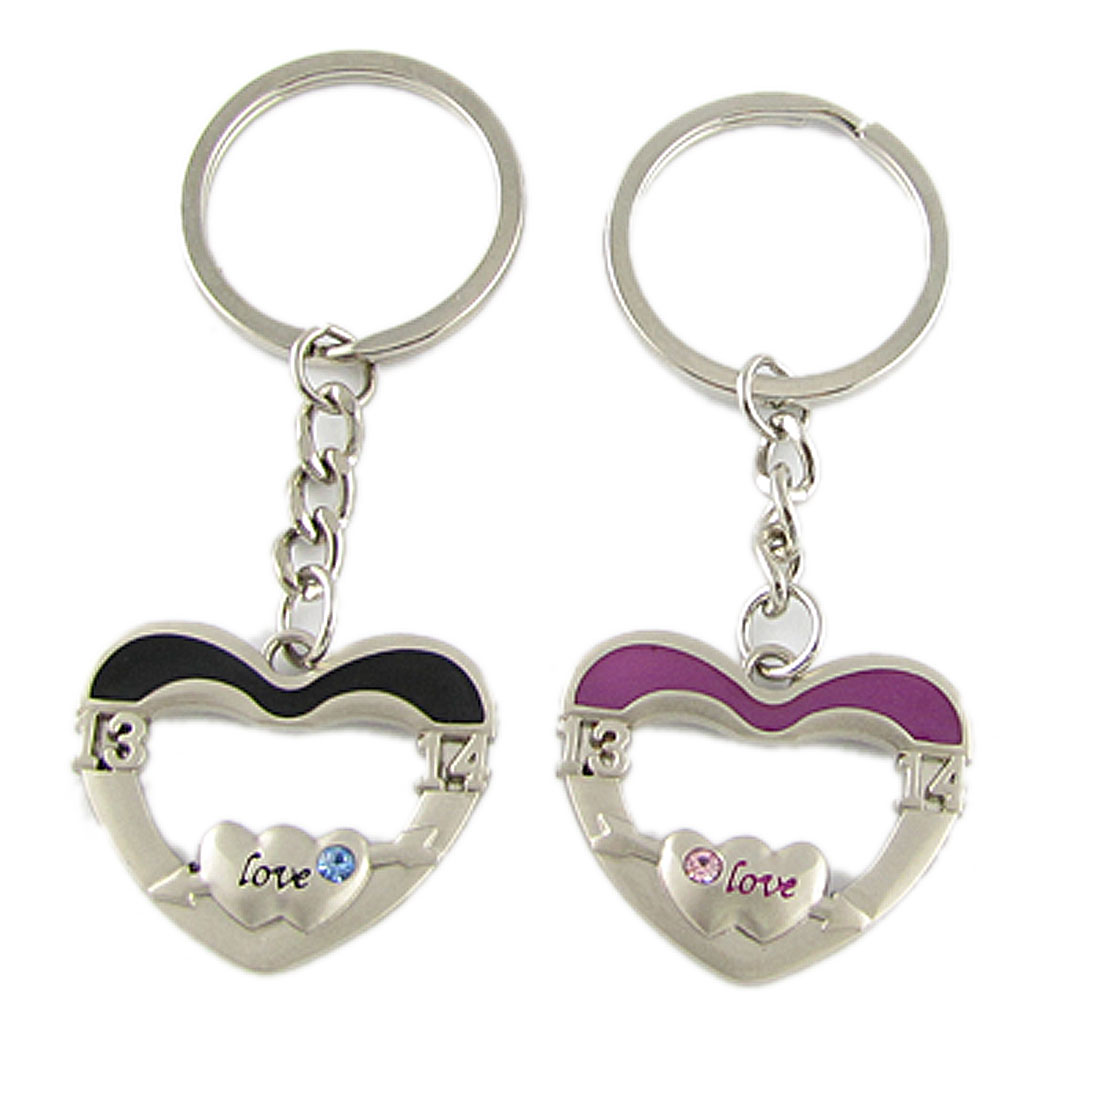 Pair of Silver Tone Heart Shape Lovers Sweetie Keychain Pendant